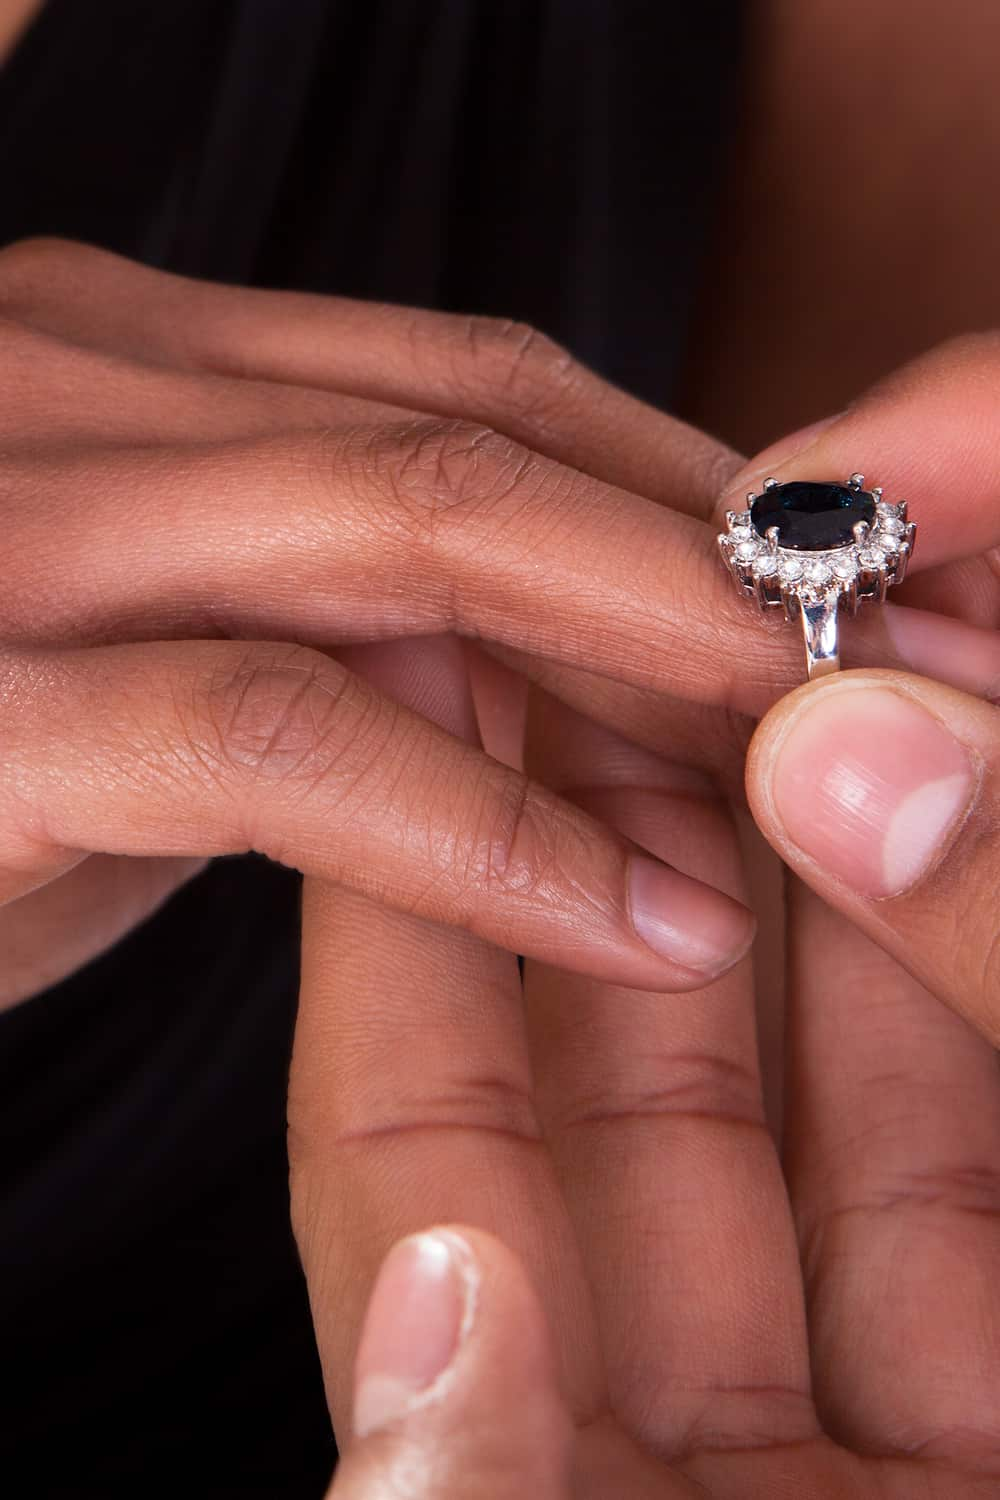 Where Does the Engagement Ring Stay After Marriage